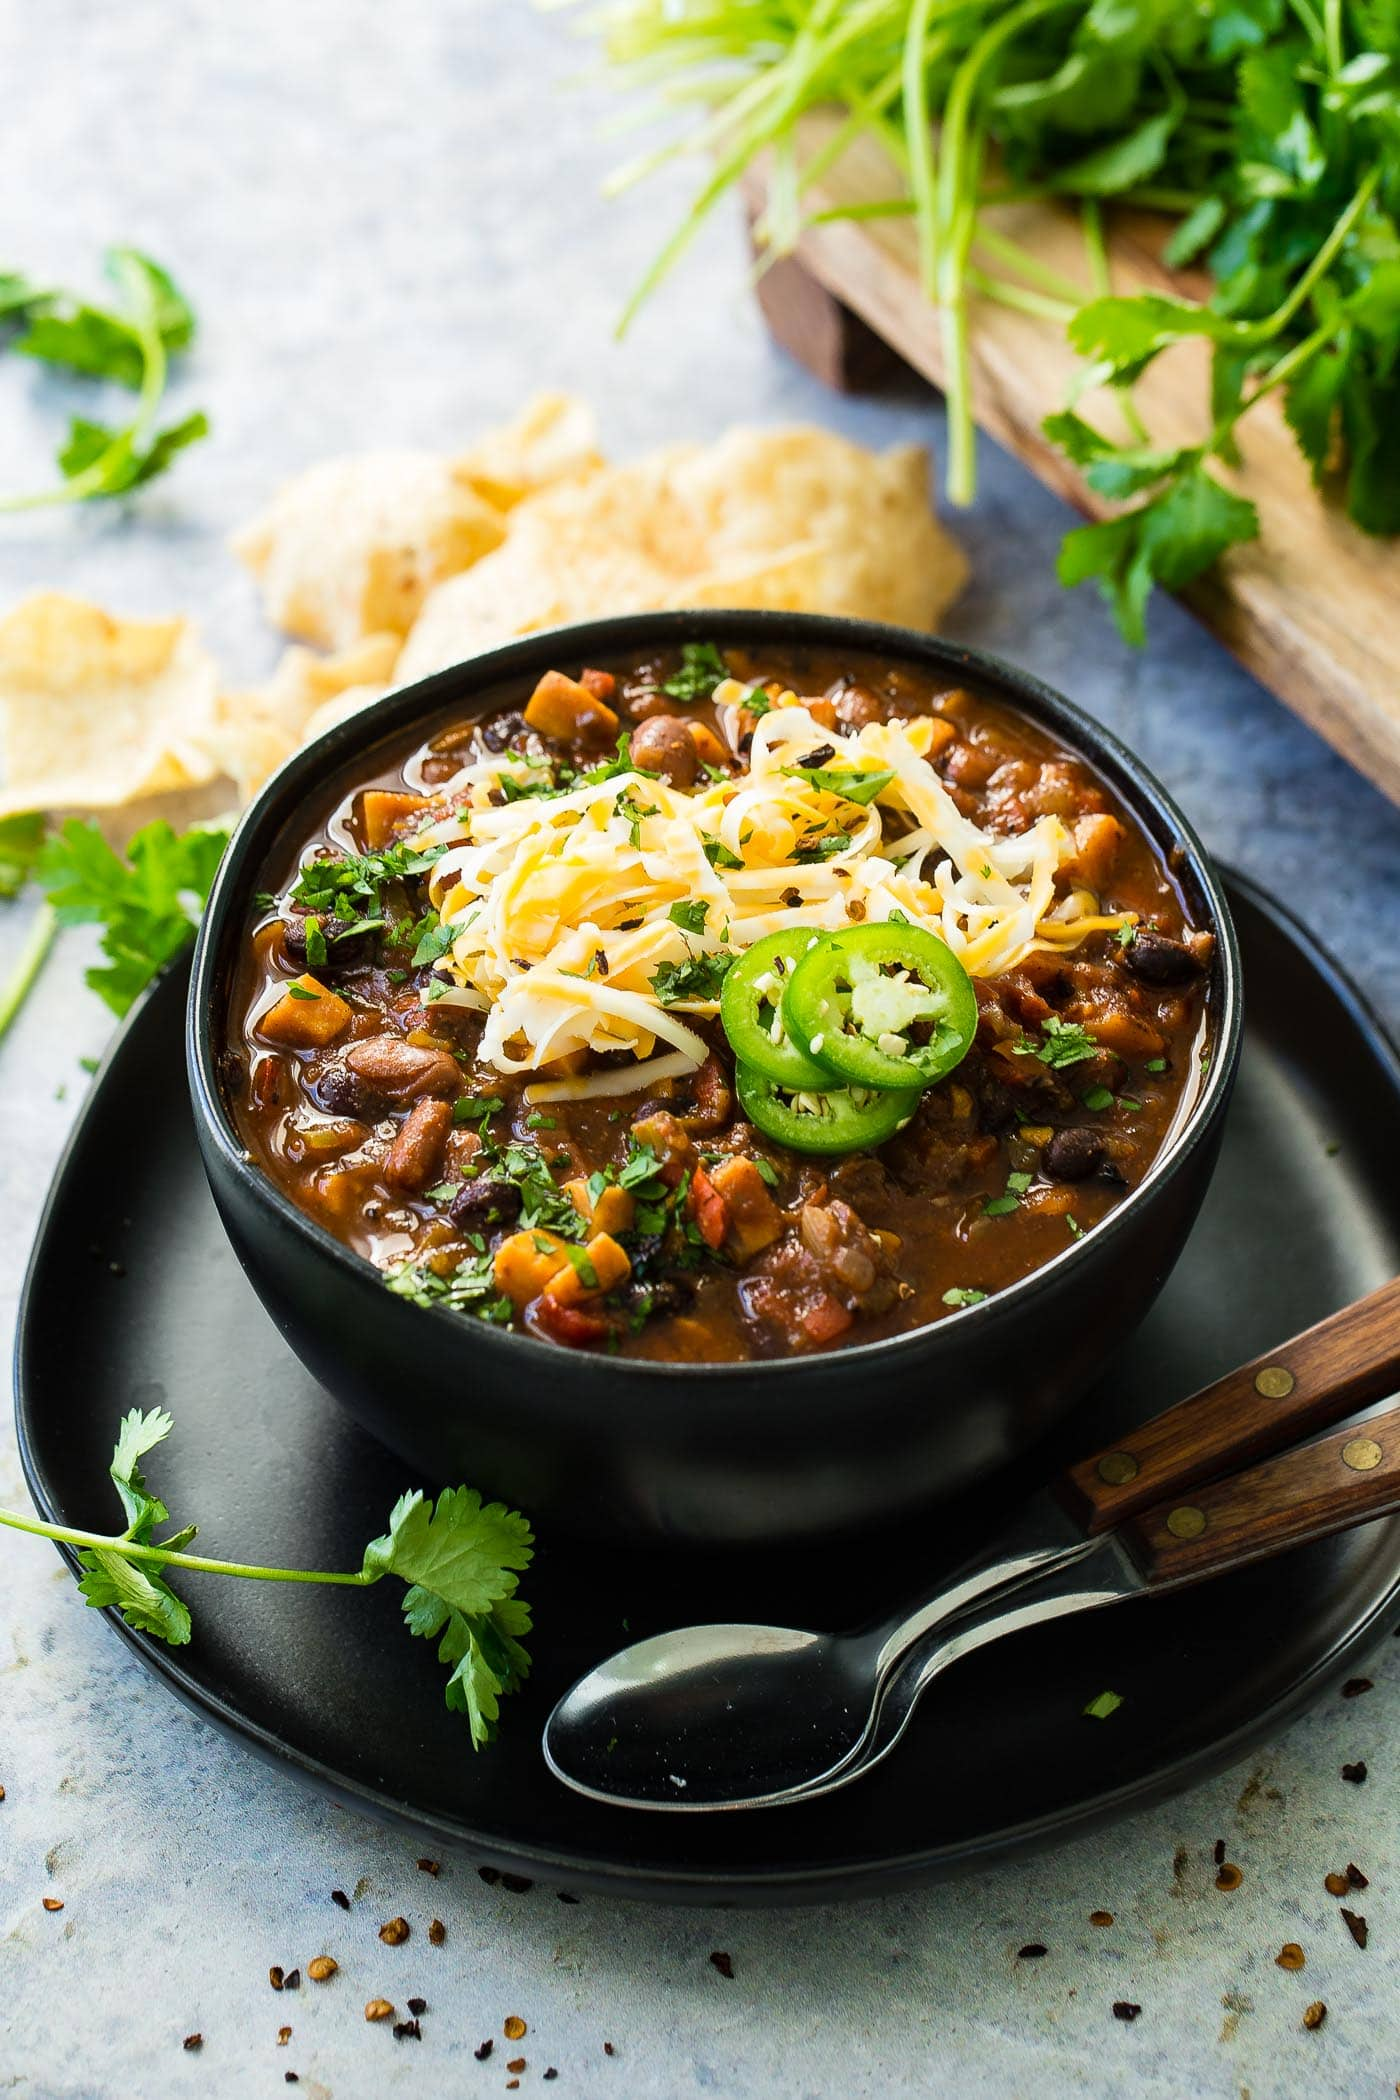 A photo of a bowl of hearty vegetarian chili topped with shredded cheese and sliced jalapeno with two spoons sitting next to the bowl.